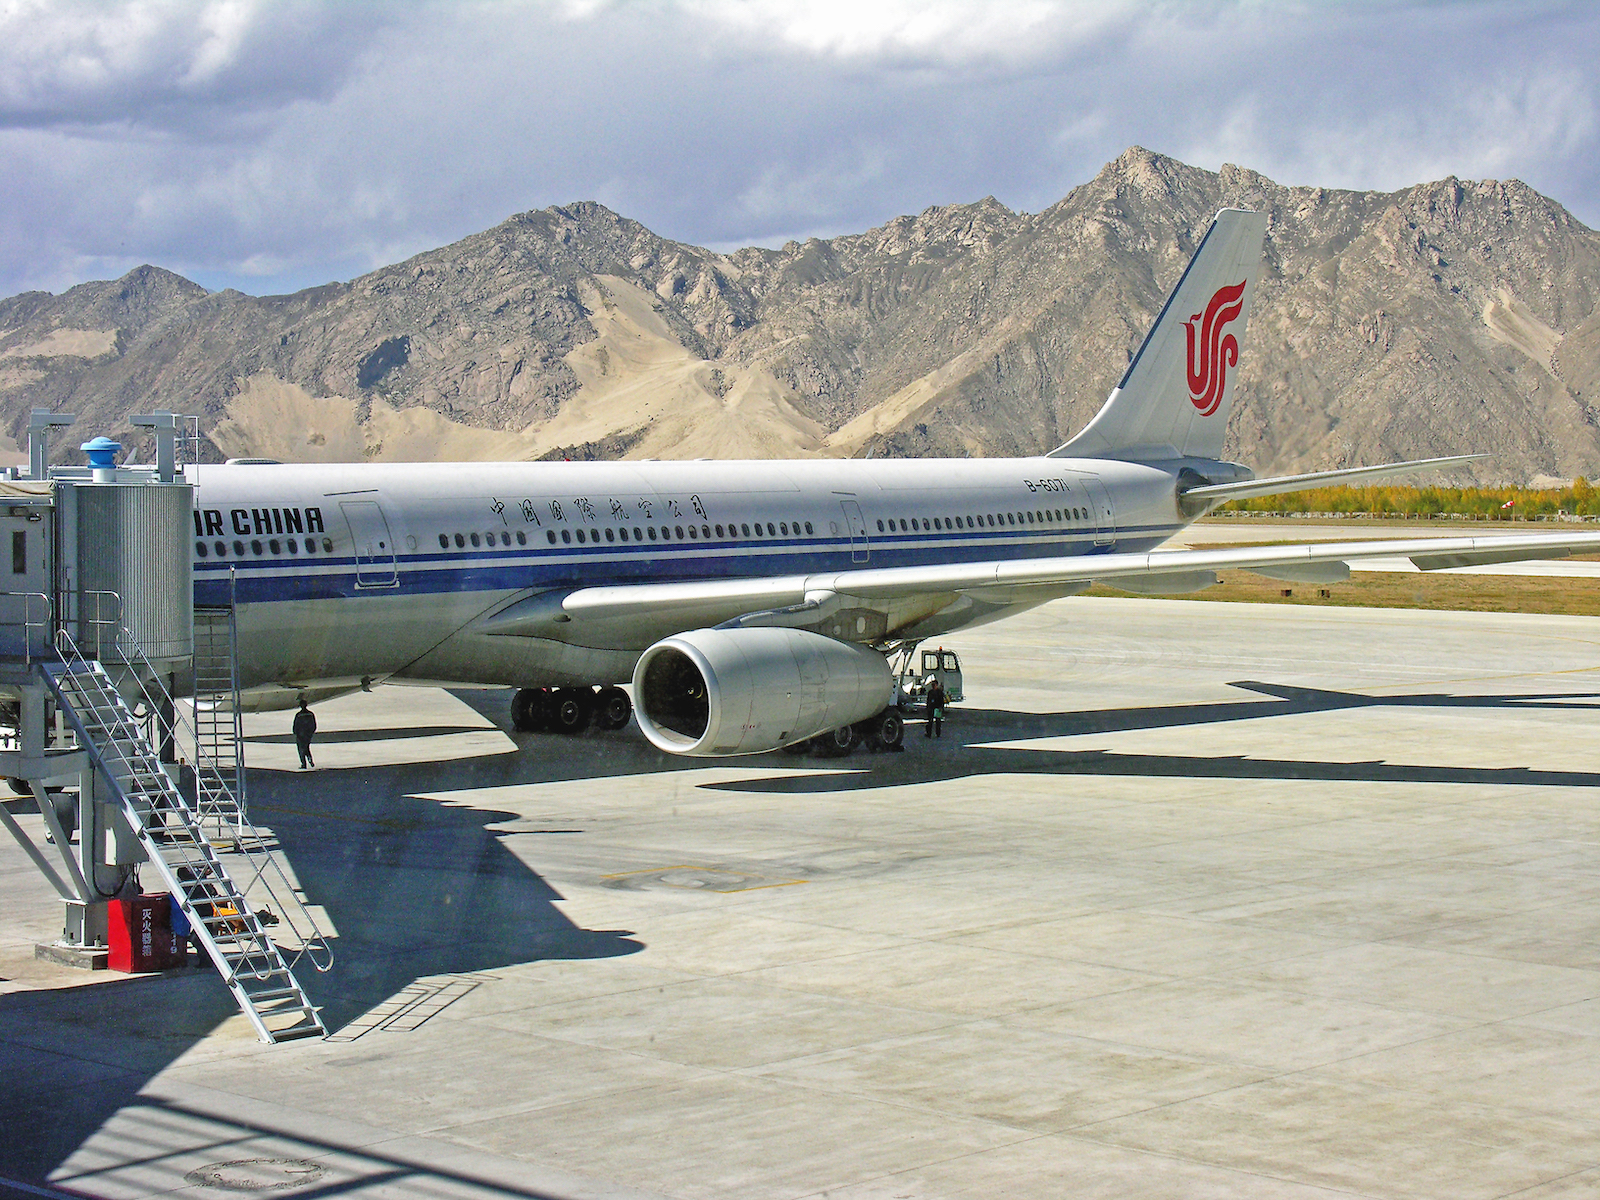 Lhasa Airport, China